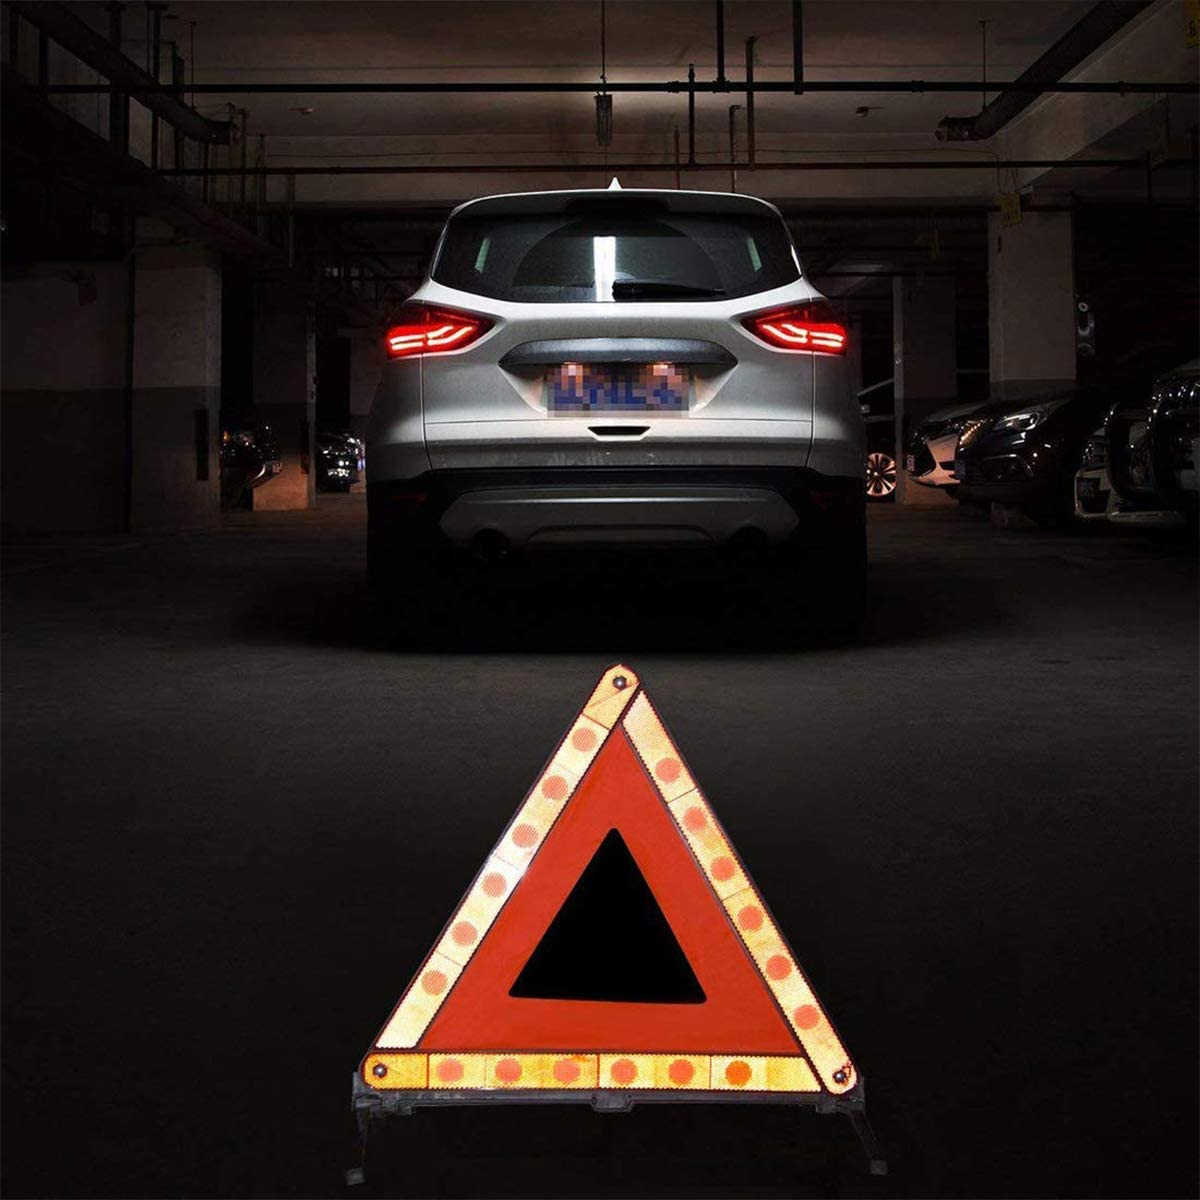 Foldable Emergency Reflector Roadside Hazard Sign Warning Triangle